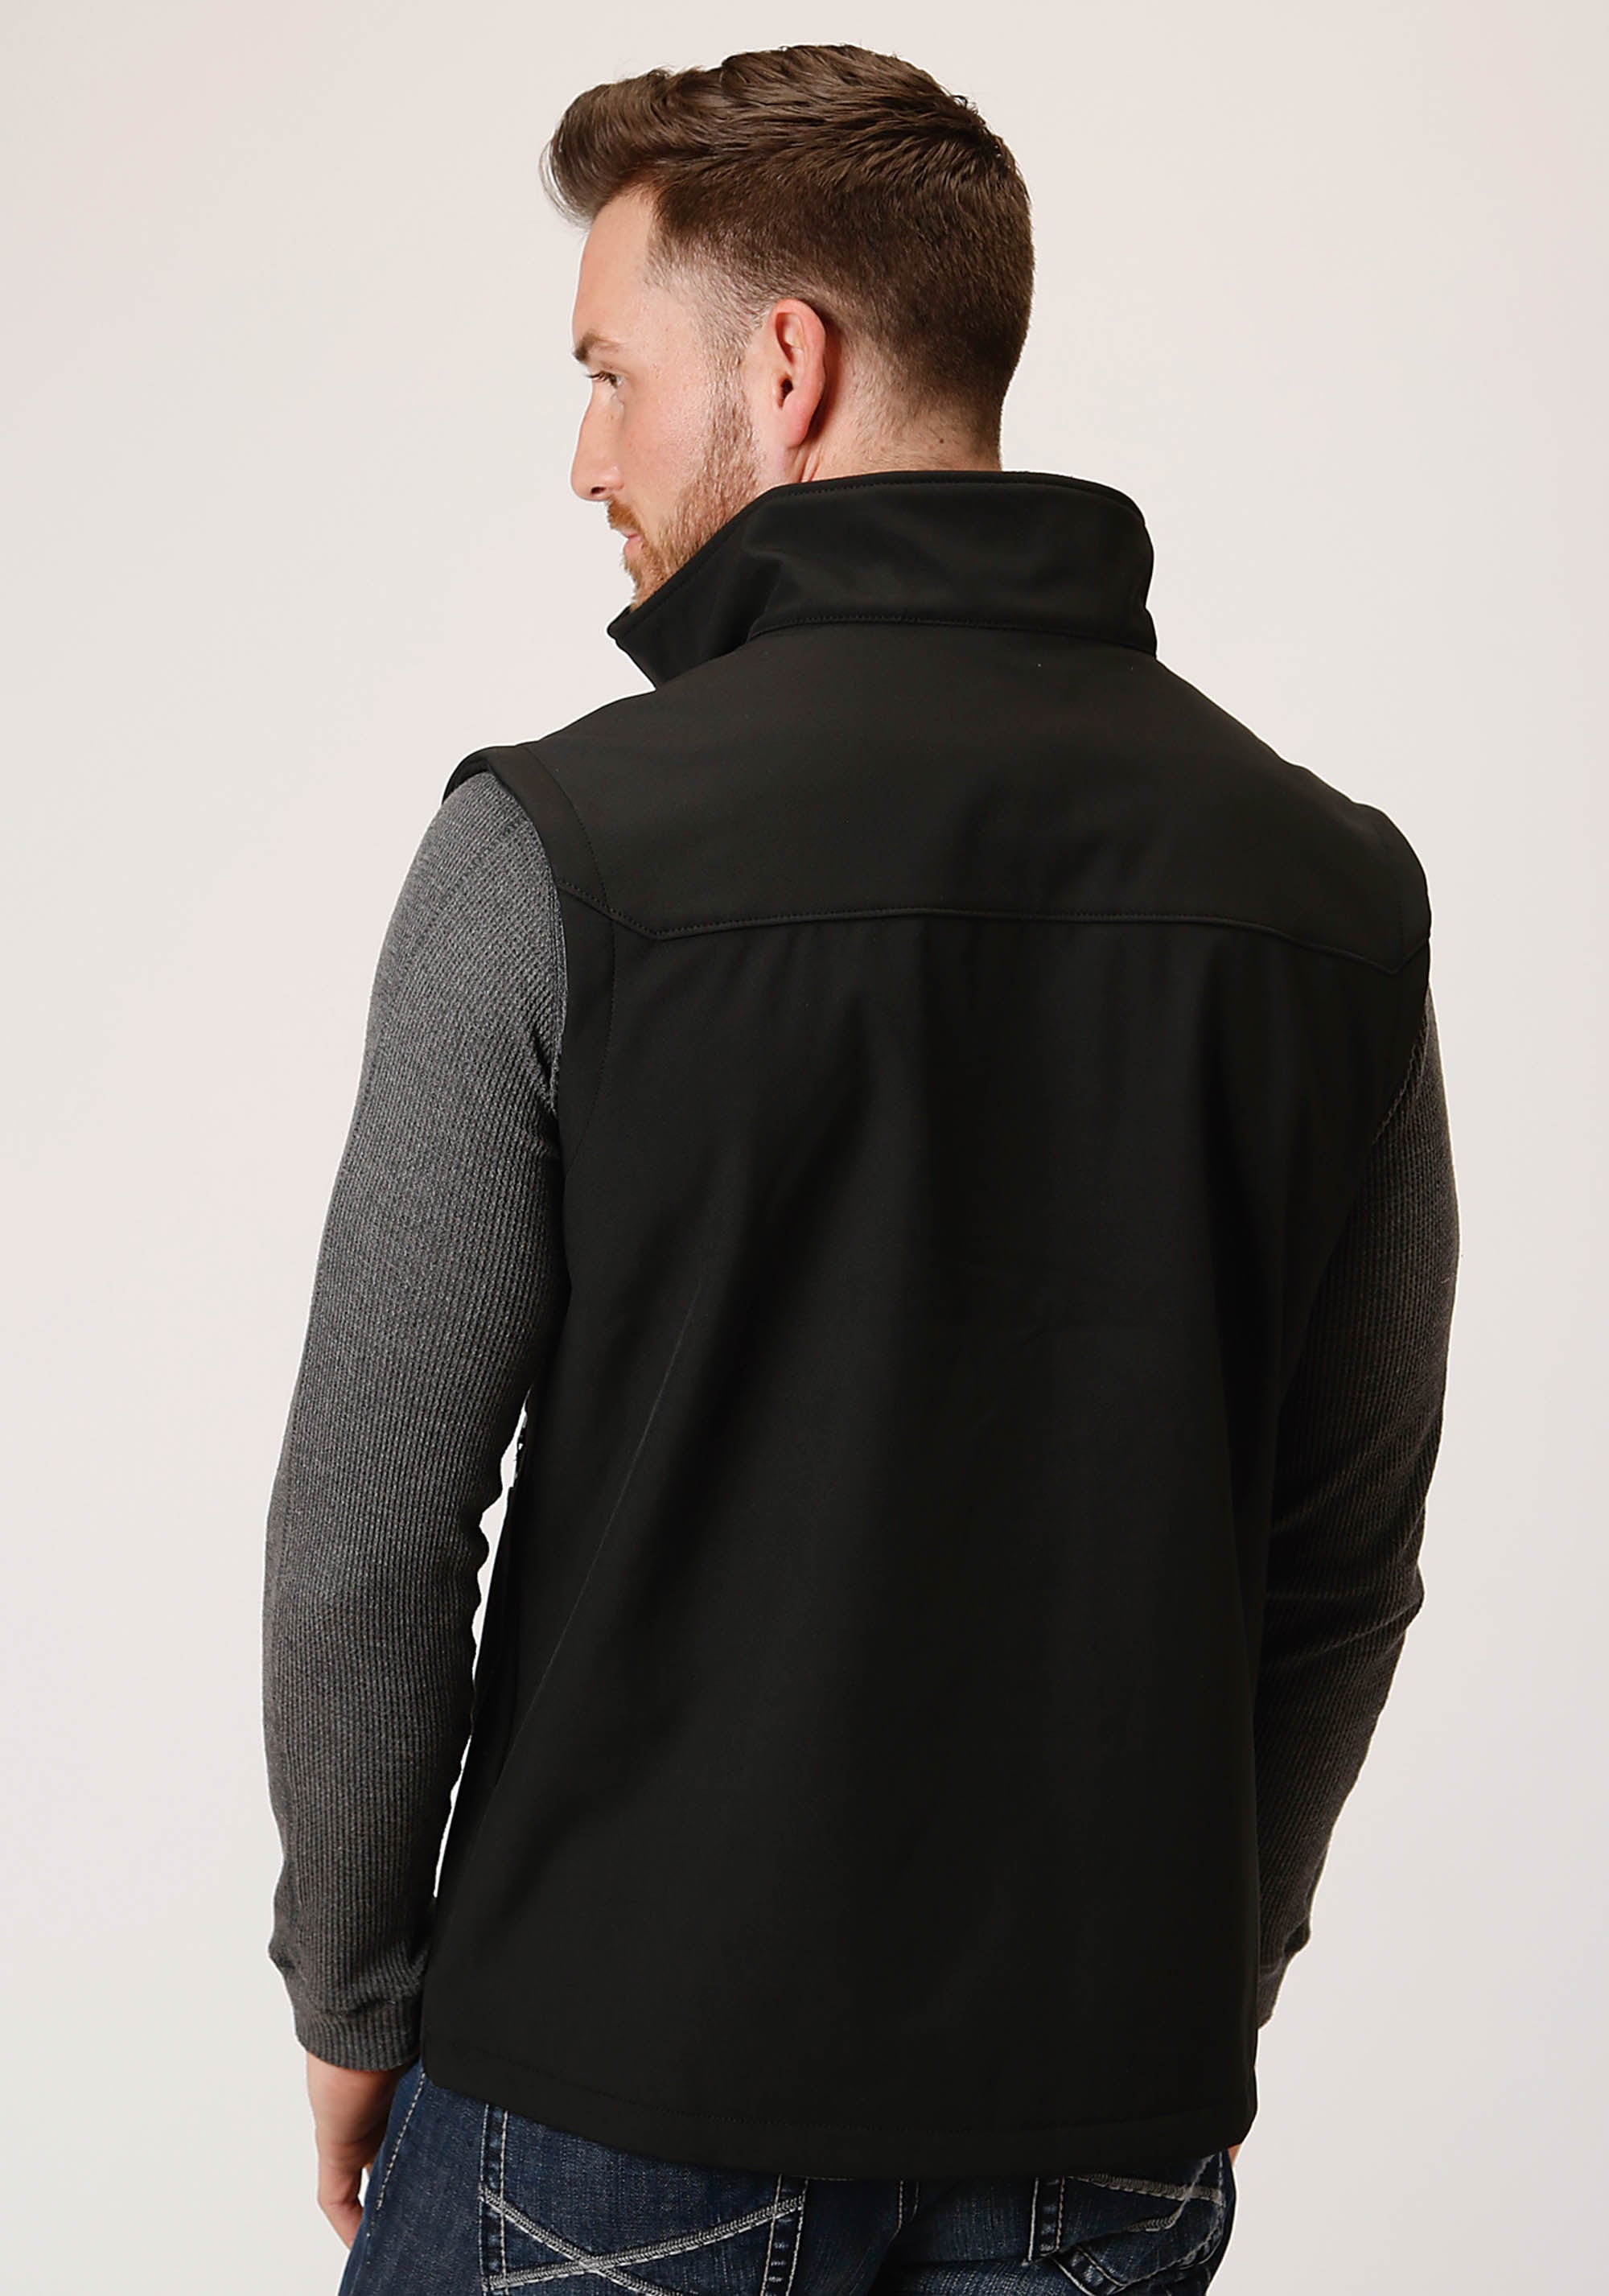 ROPER MENS BLACK 00259 BLACK W/BLACK SOFTSHELL VEST ROPER OUTERWEAR- MEN'S IN STOCK JACKET